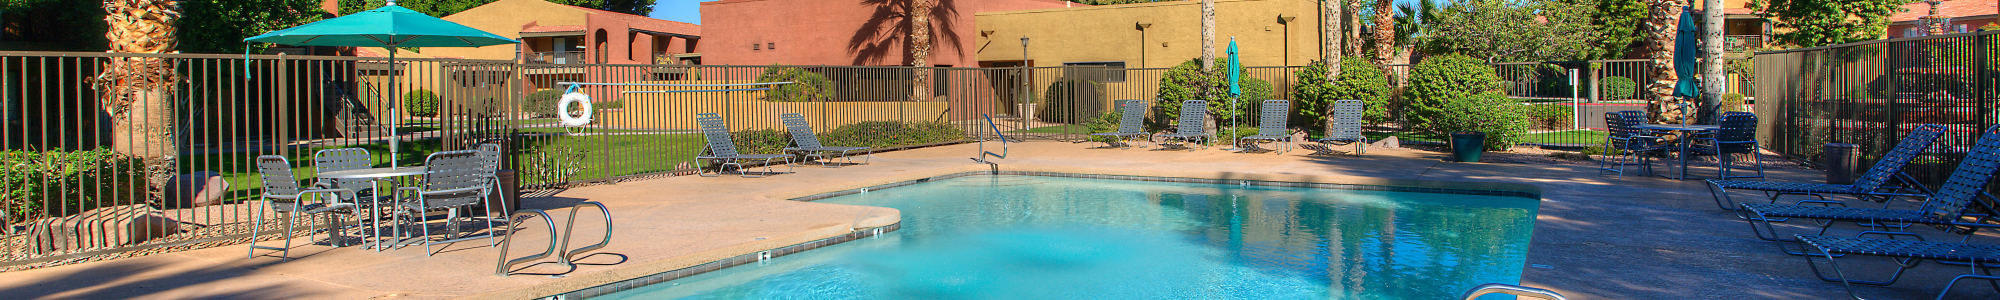 Learn more about our apartment homes for rent at Verona Park Apartments in Mesa